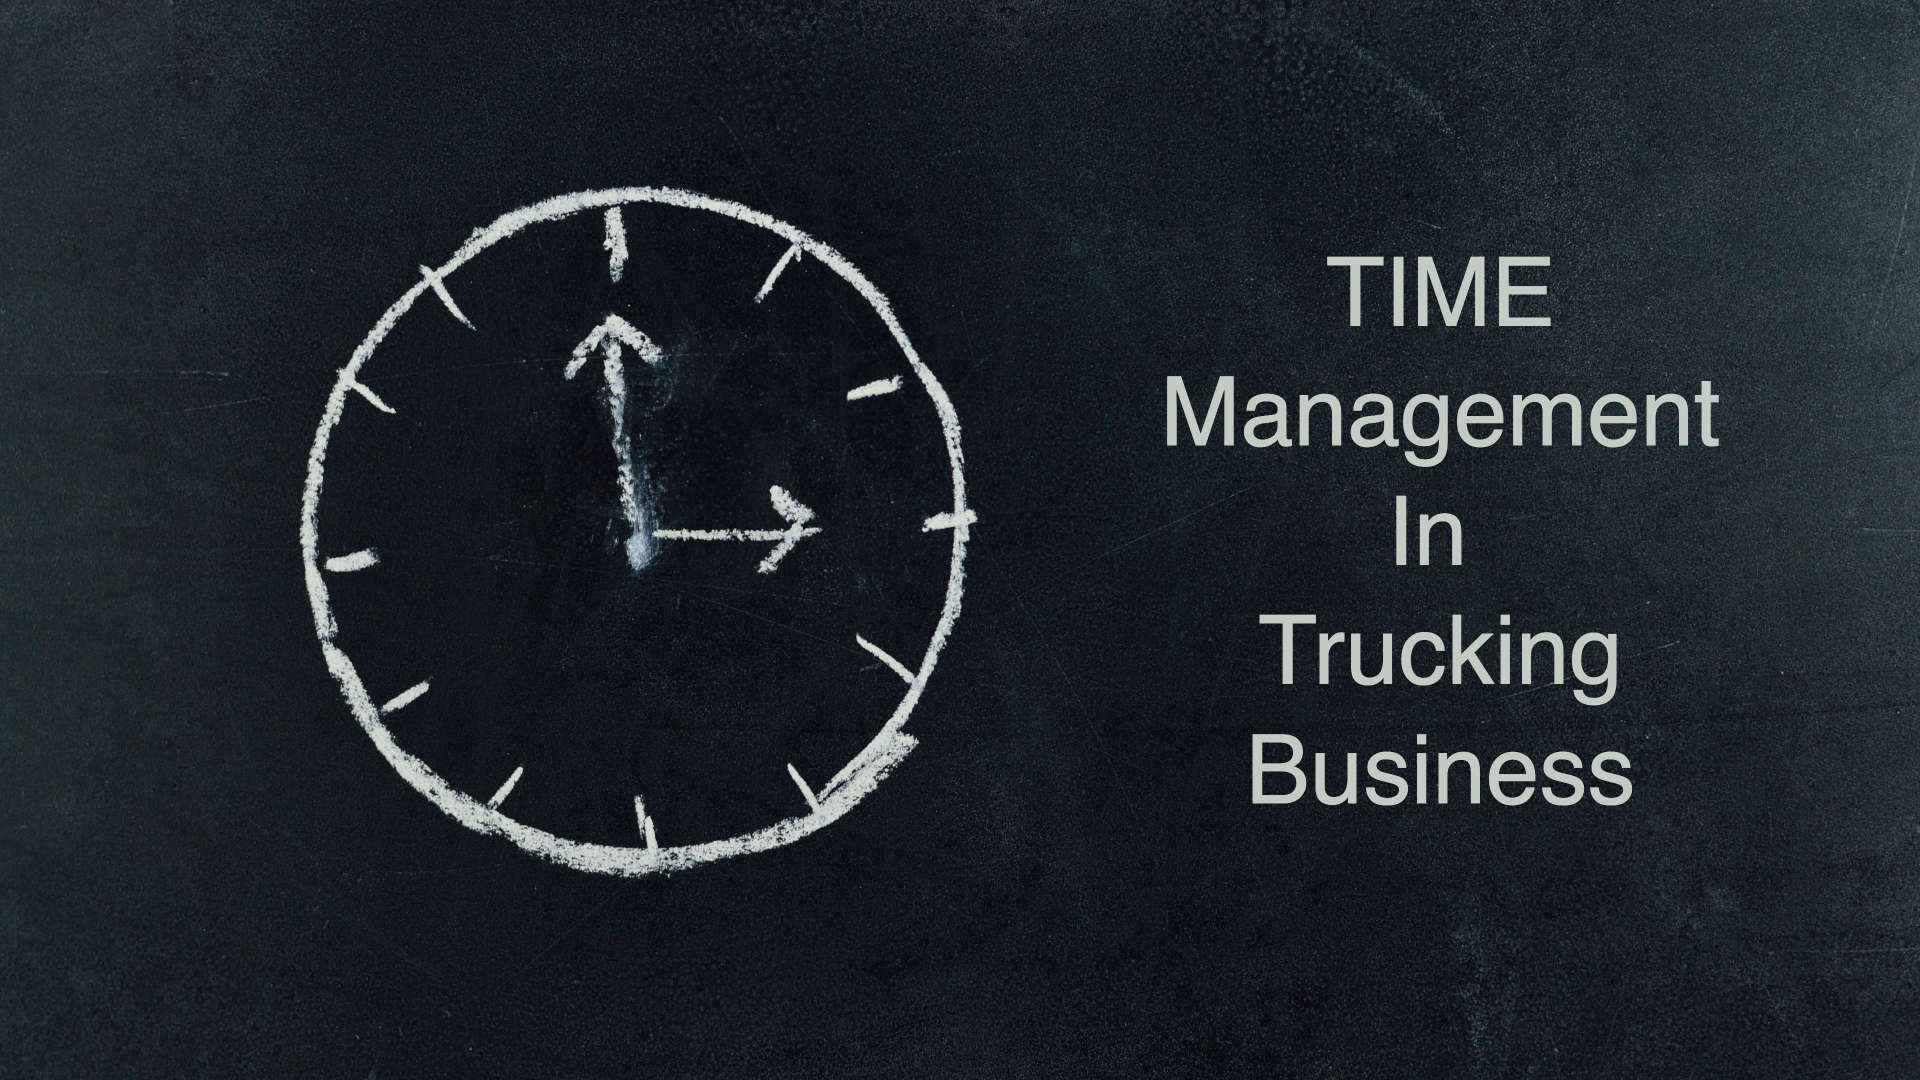 7 Ways To Manage Schedule Better In Trucking Business